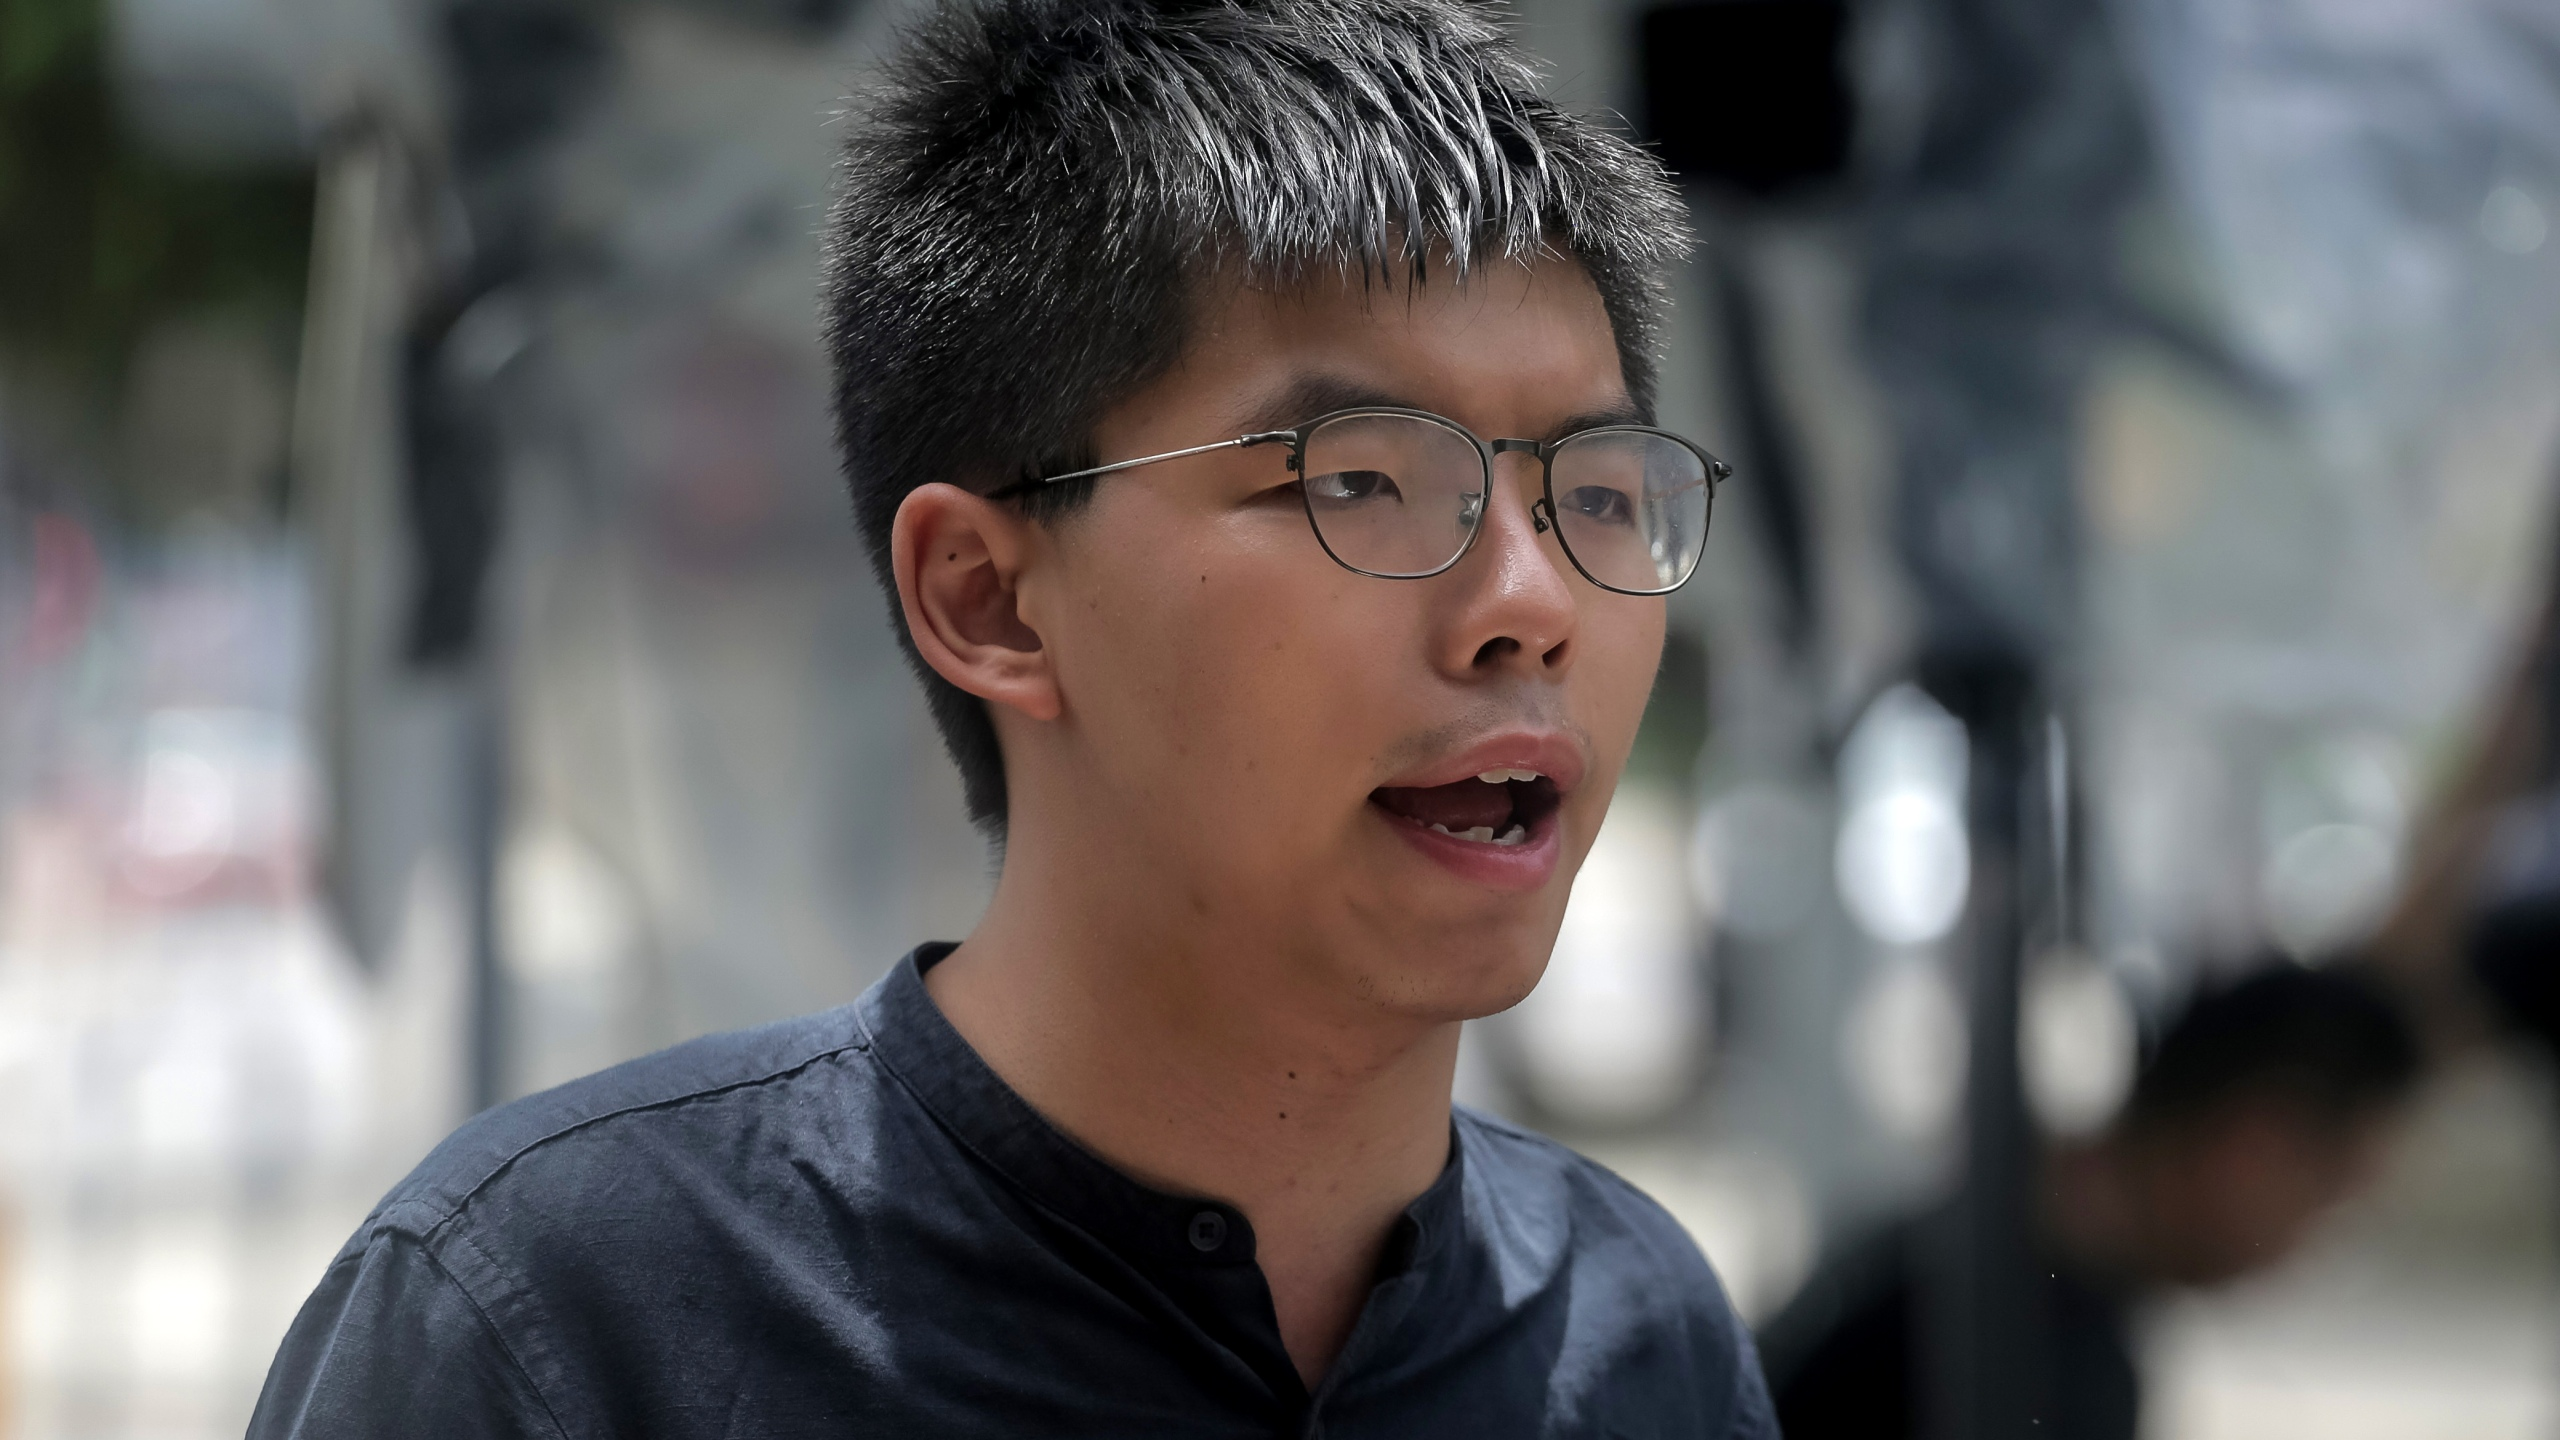 Pro-democracy activist Joshua Wong speaks to media outside the government headquarters in Hong Kong on July 2, 2019, a day after protesters broke into the building. (Credit: Vivek Prakash / AFP / Getty Images)